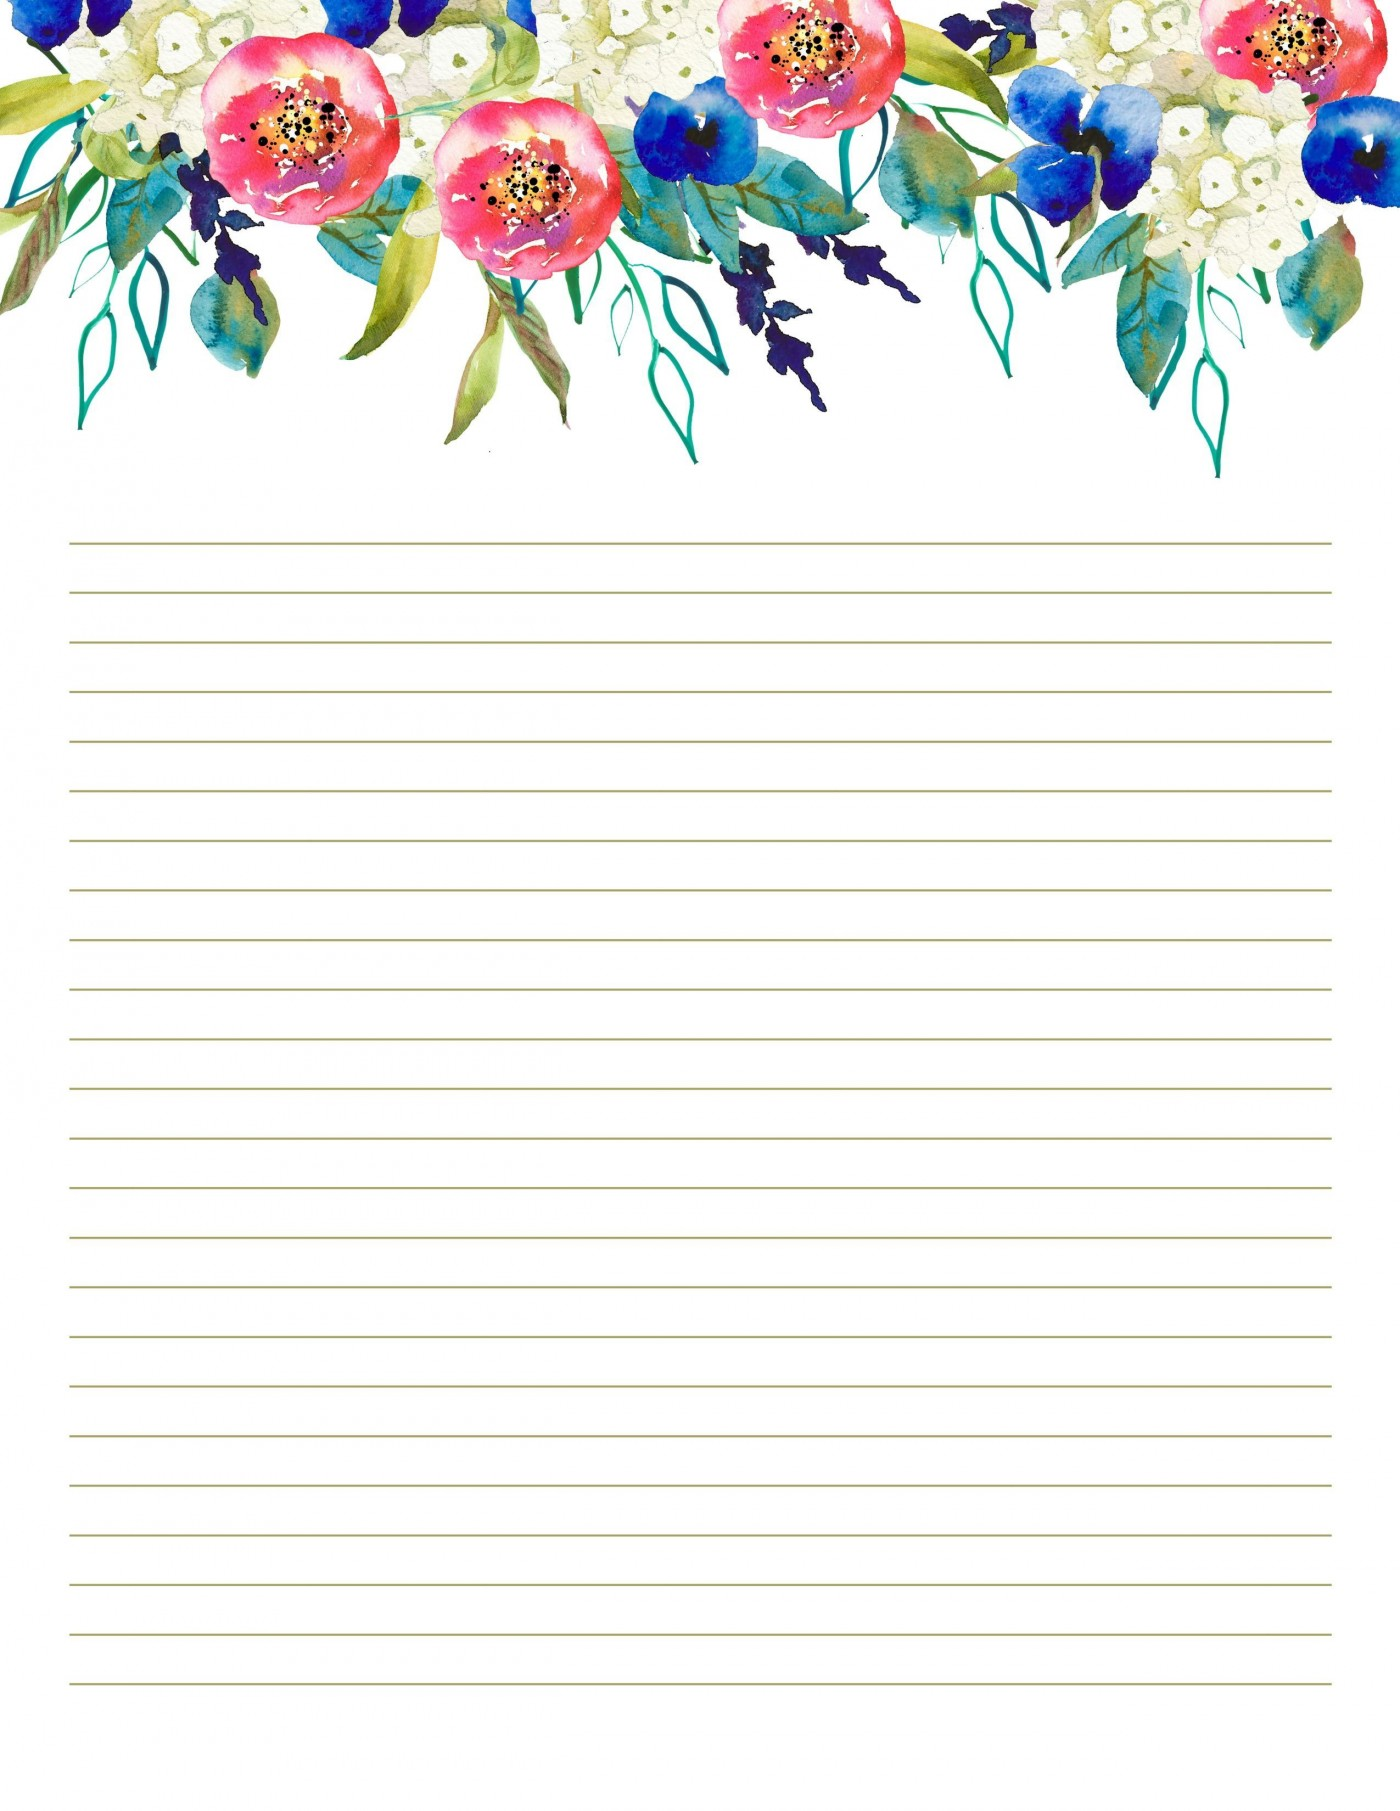 007 Top Free Printable Stationery Paper Template Design 1400